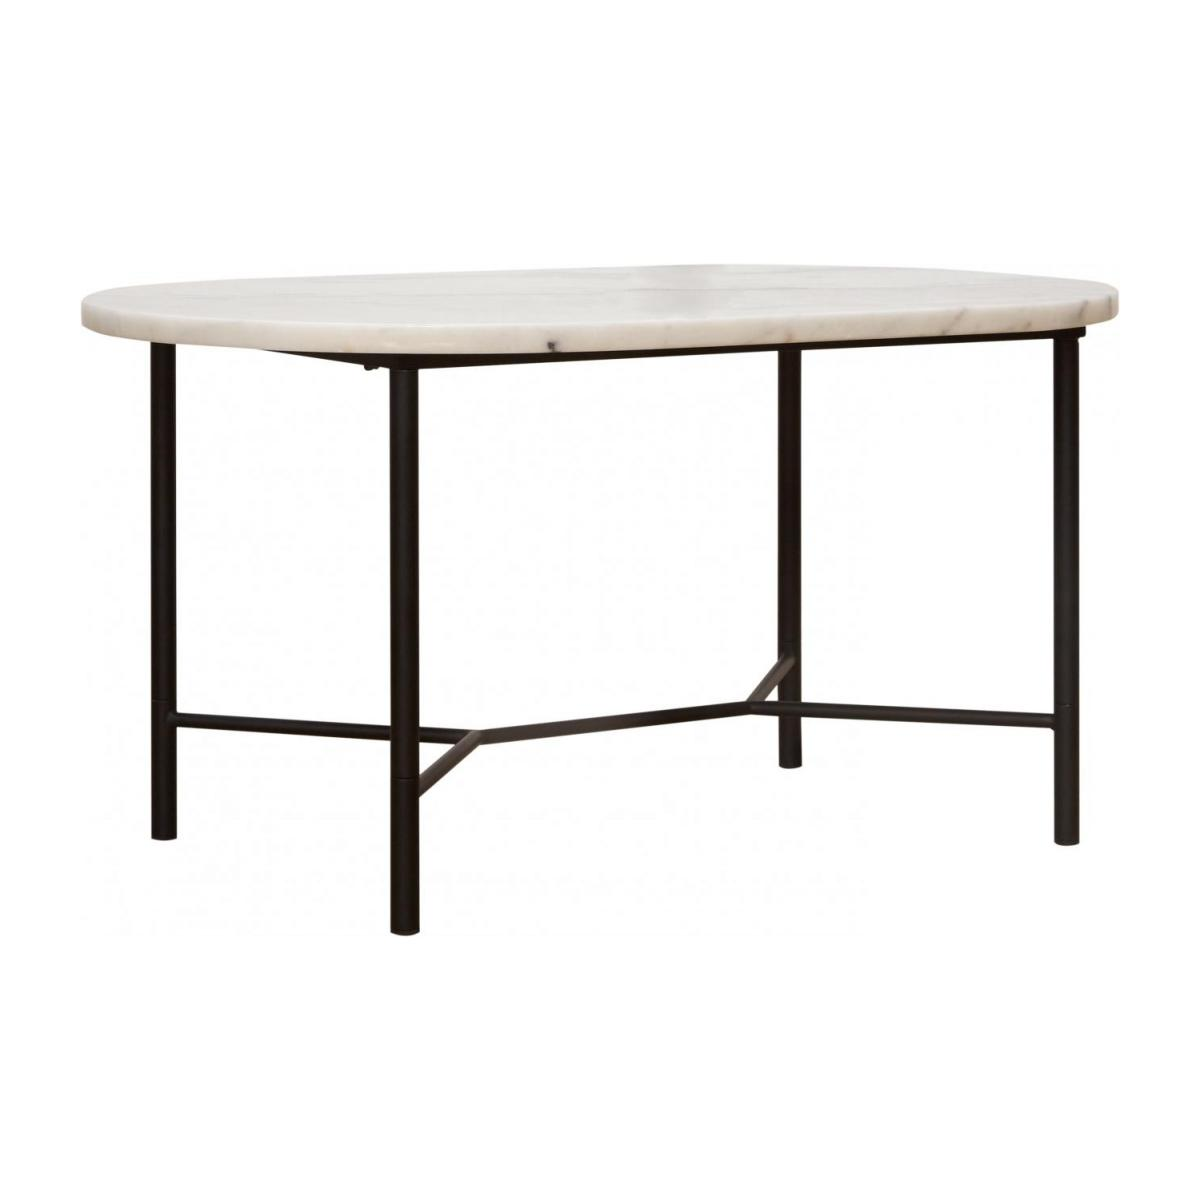 Table Basse En Marbre Goldie Table Basse Ovale Marbre Blanc